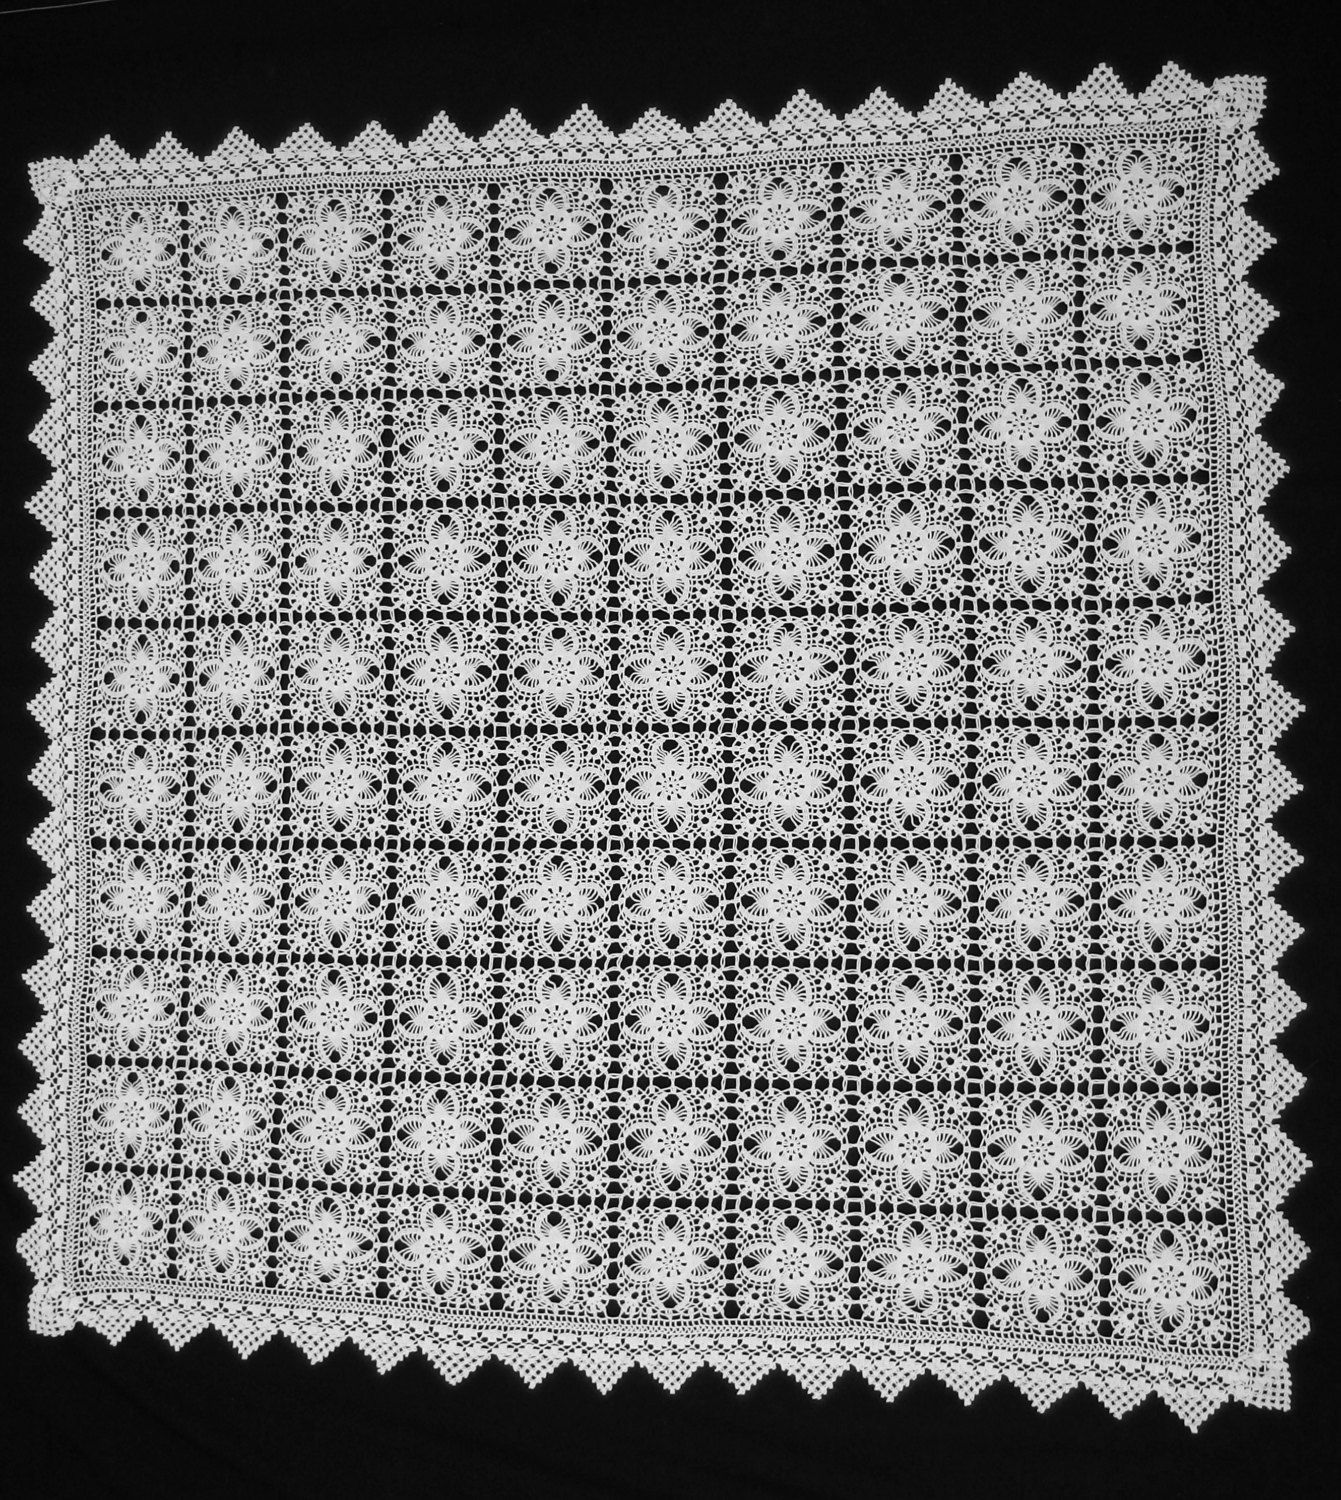 Vintage Square White Filet Lace Tablecloth Crochet Flowers Motifs Geometric  Trimming Handcrocheted Cottage Chic Decor By